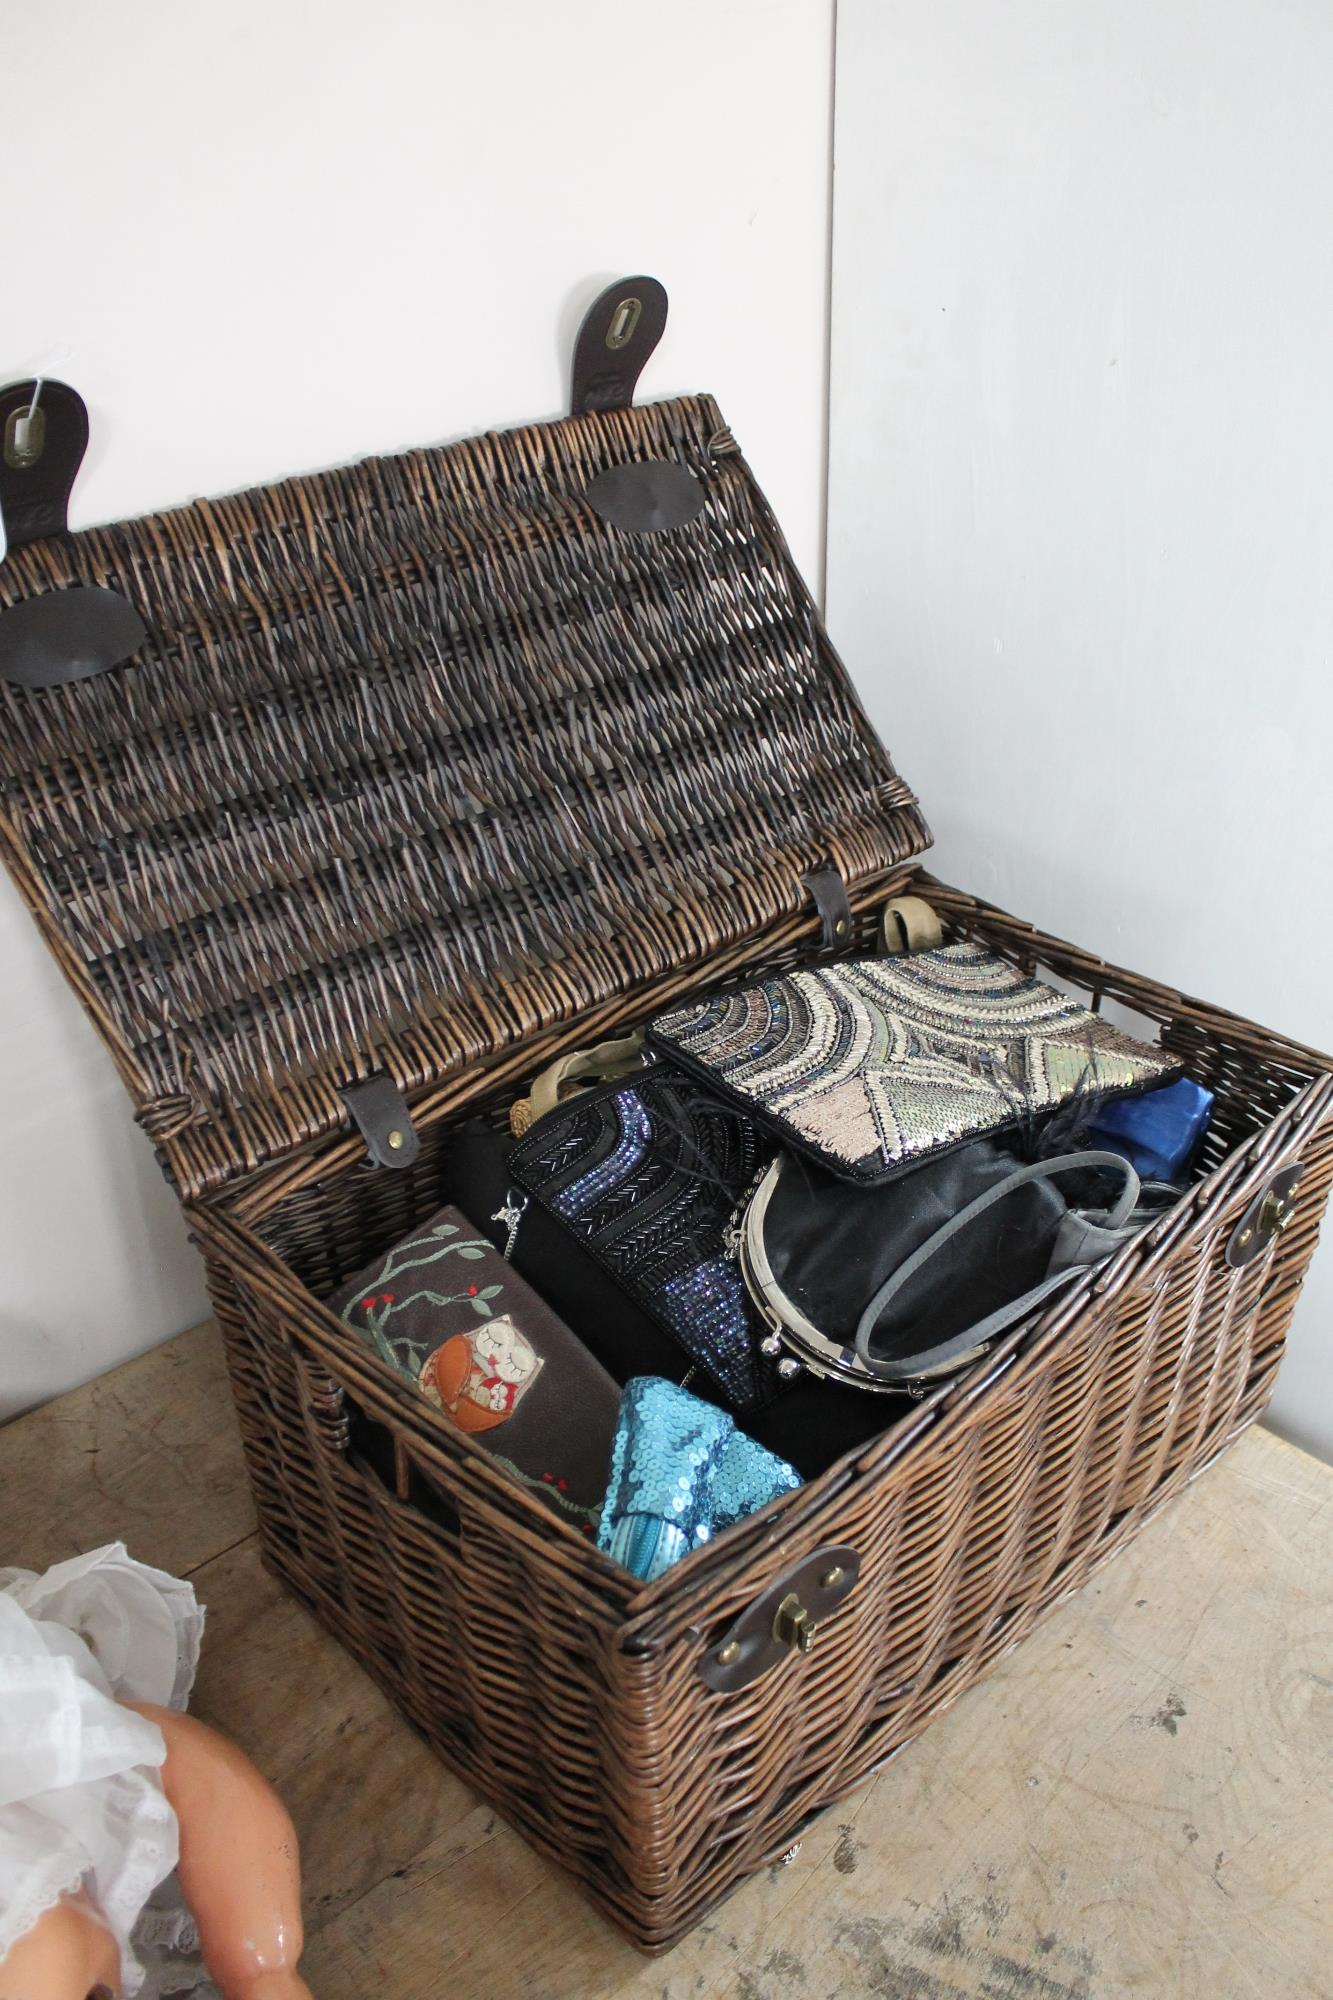 Lot 90 - A wicker basket containing a collection of lady's handbags